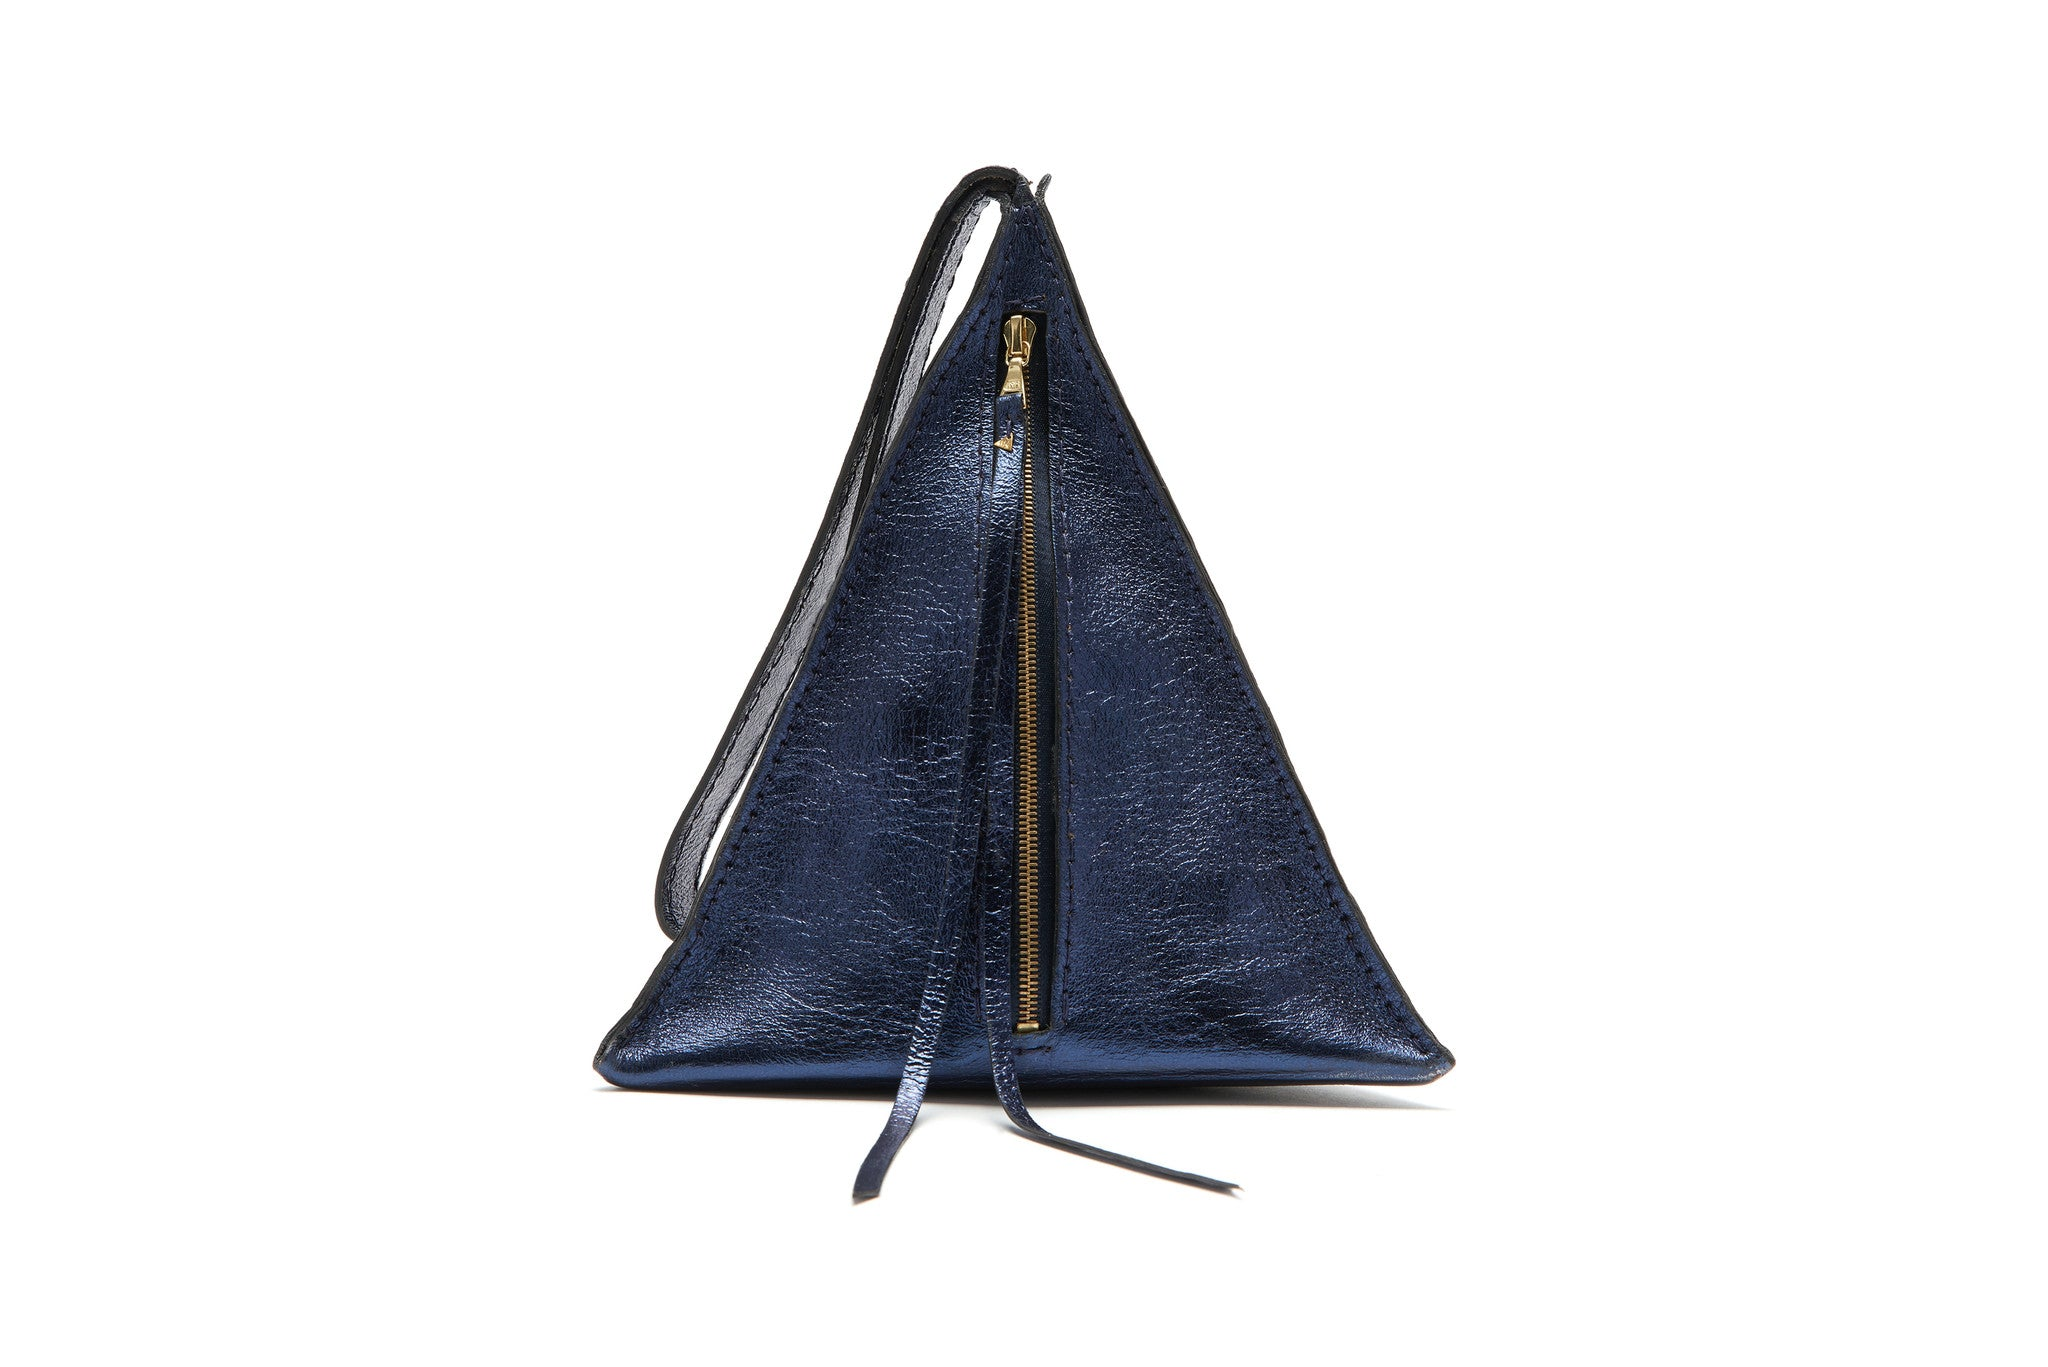 Wendy Nichol SS17 Fashion Show Death Valley Triangle shape leather bag UFO choker Devil Star Pyramid Triangle Bag handbag purse wristlet Sparkle Midnight Navy Blue Metallic Patent Leather